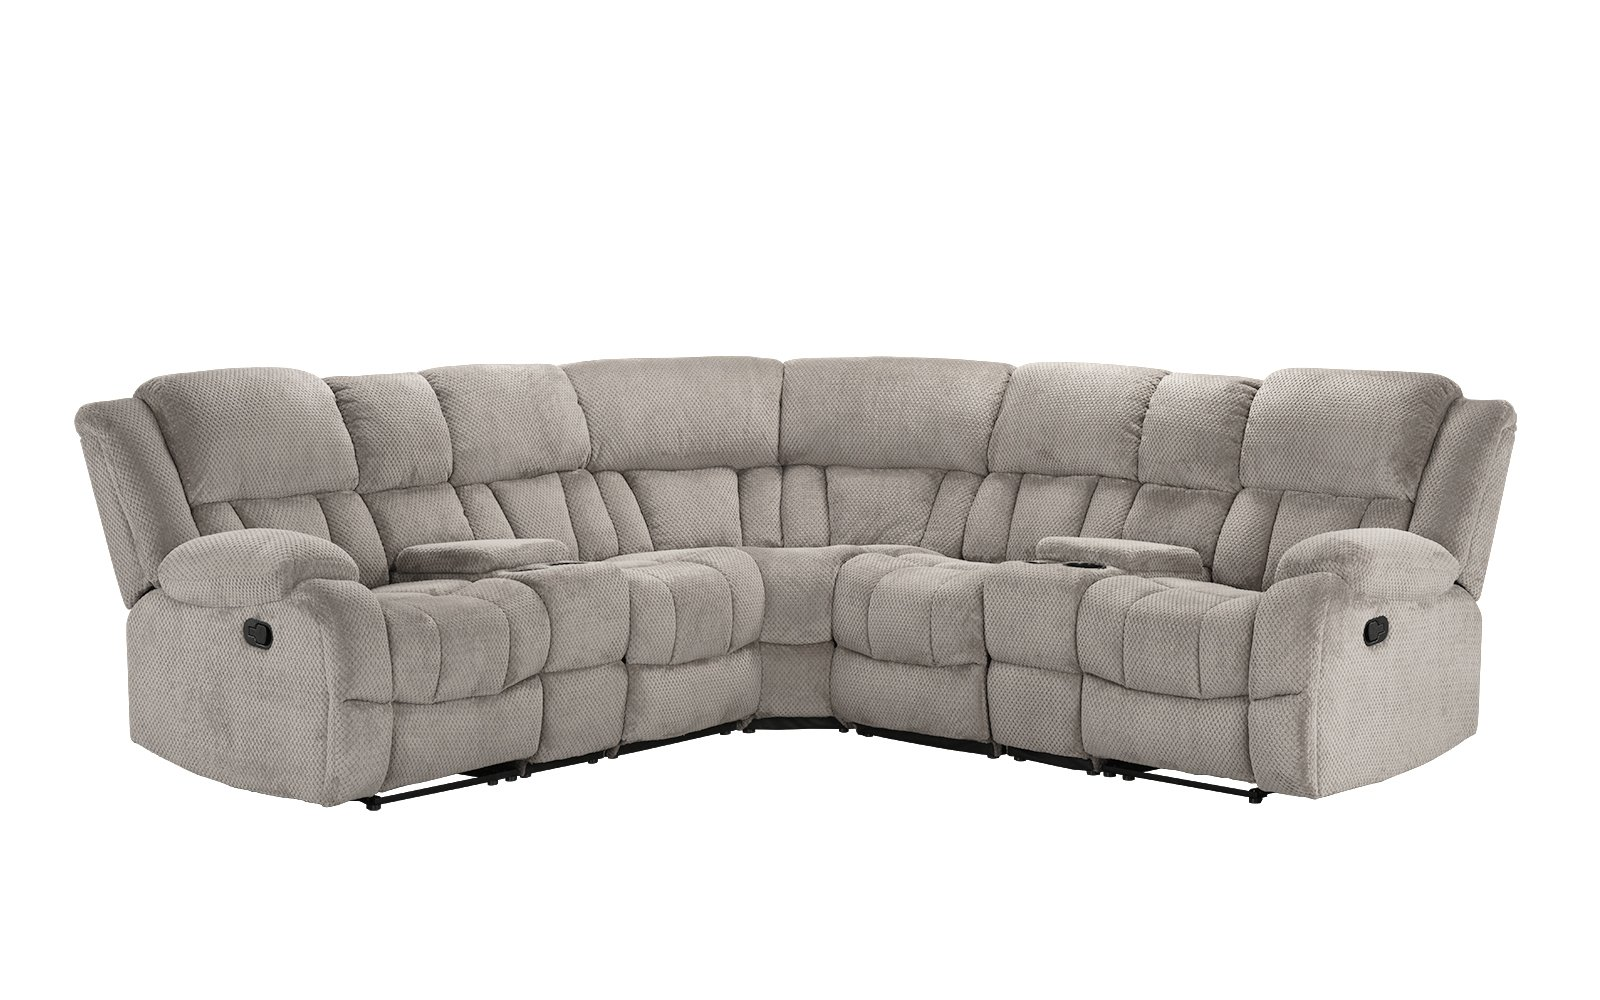 Classic Large Linen Fabric L Shape Sectional Recliner Sofa Couch ...